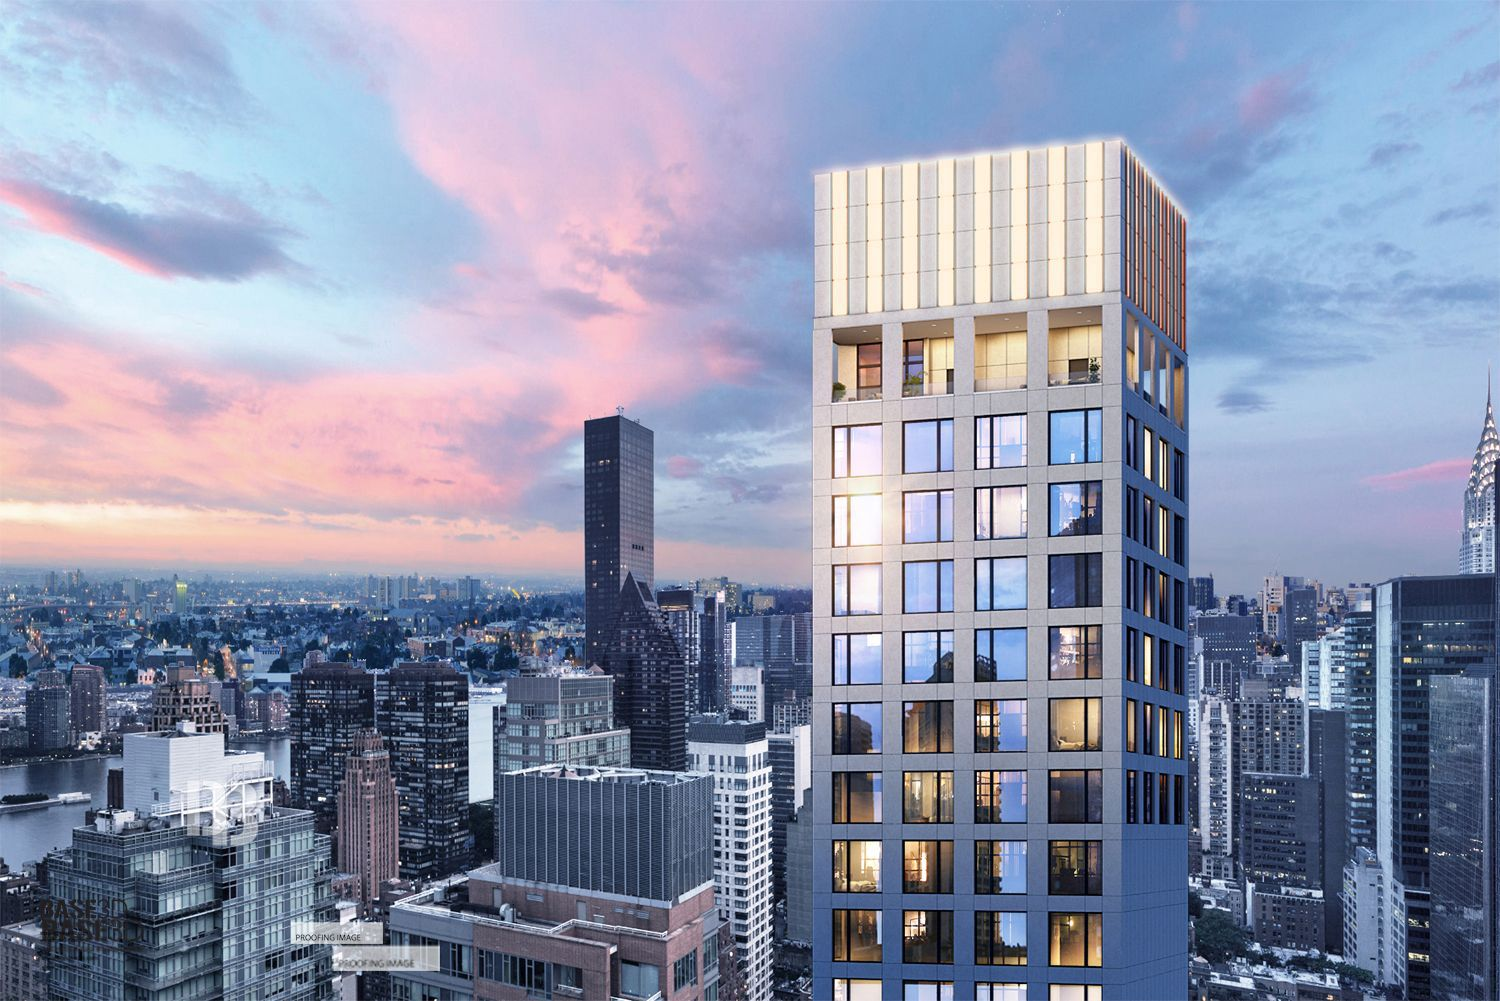 232 East 54th Street. All images courtesy of NYC Housing Connect